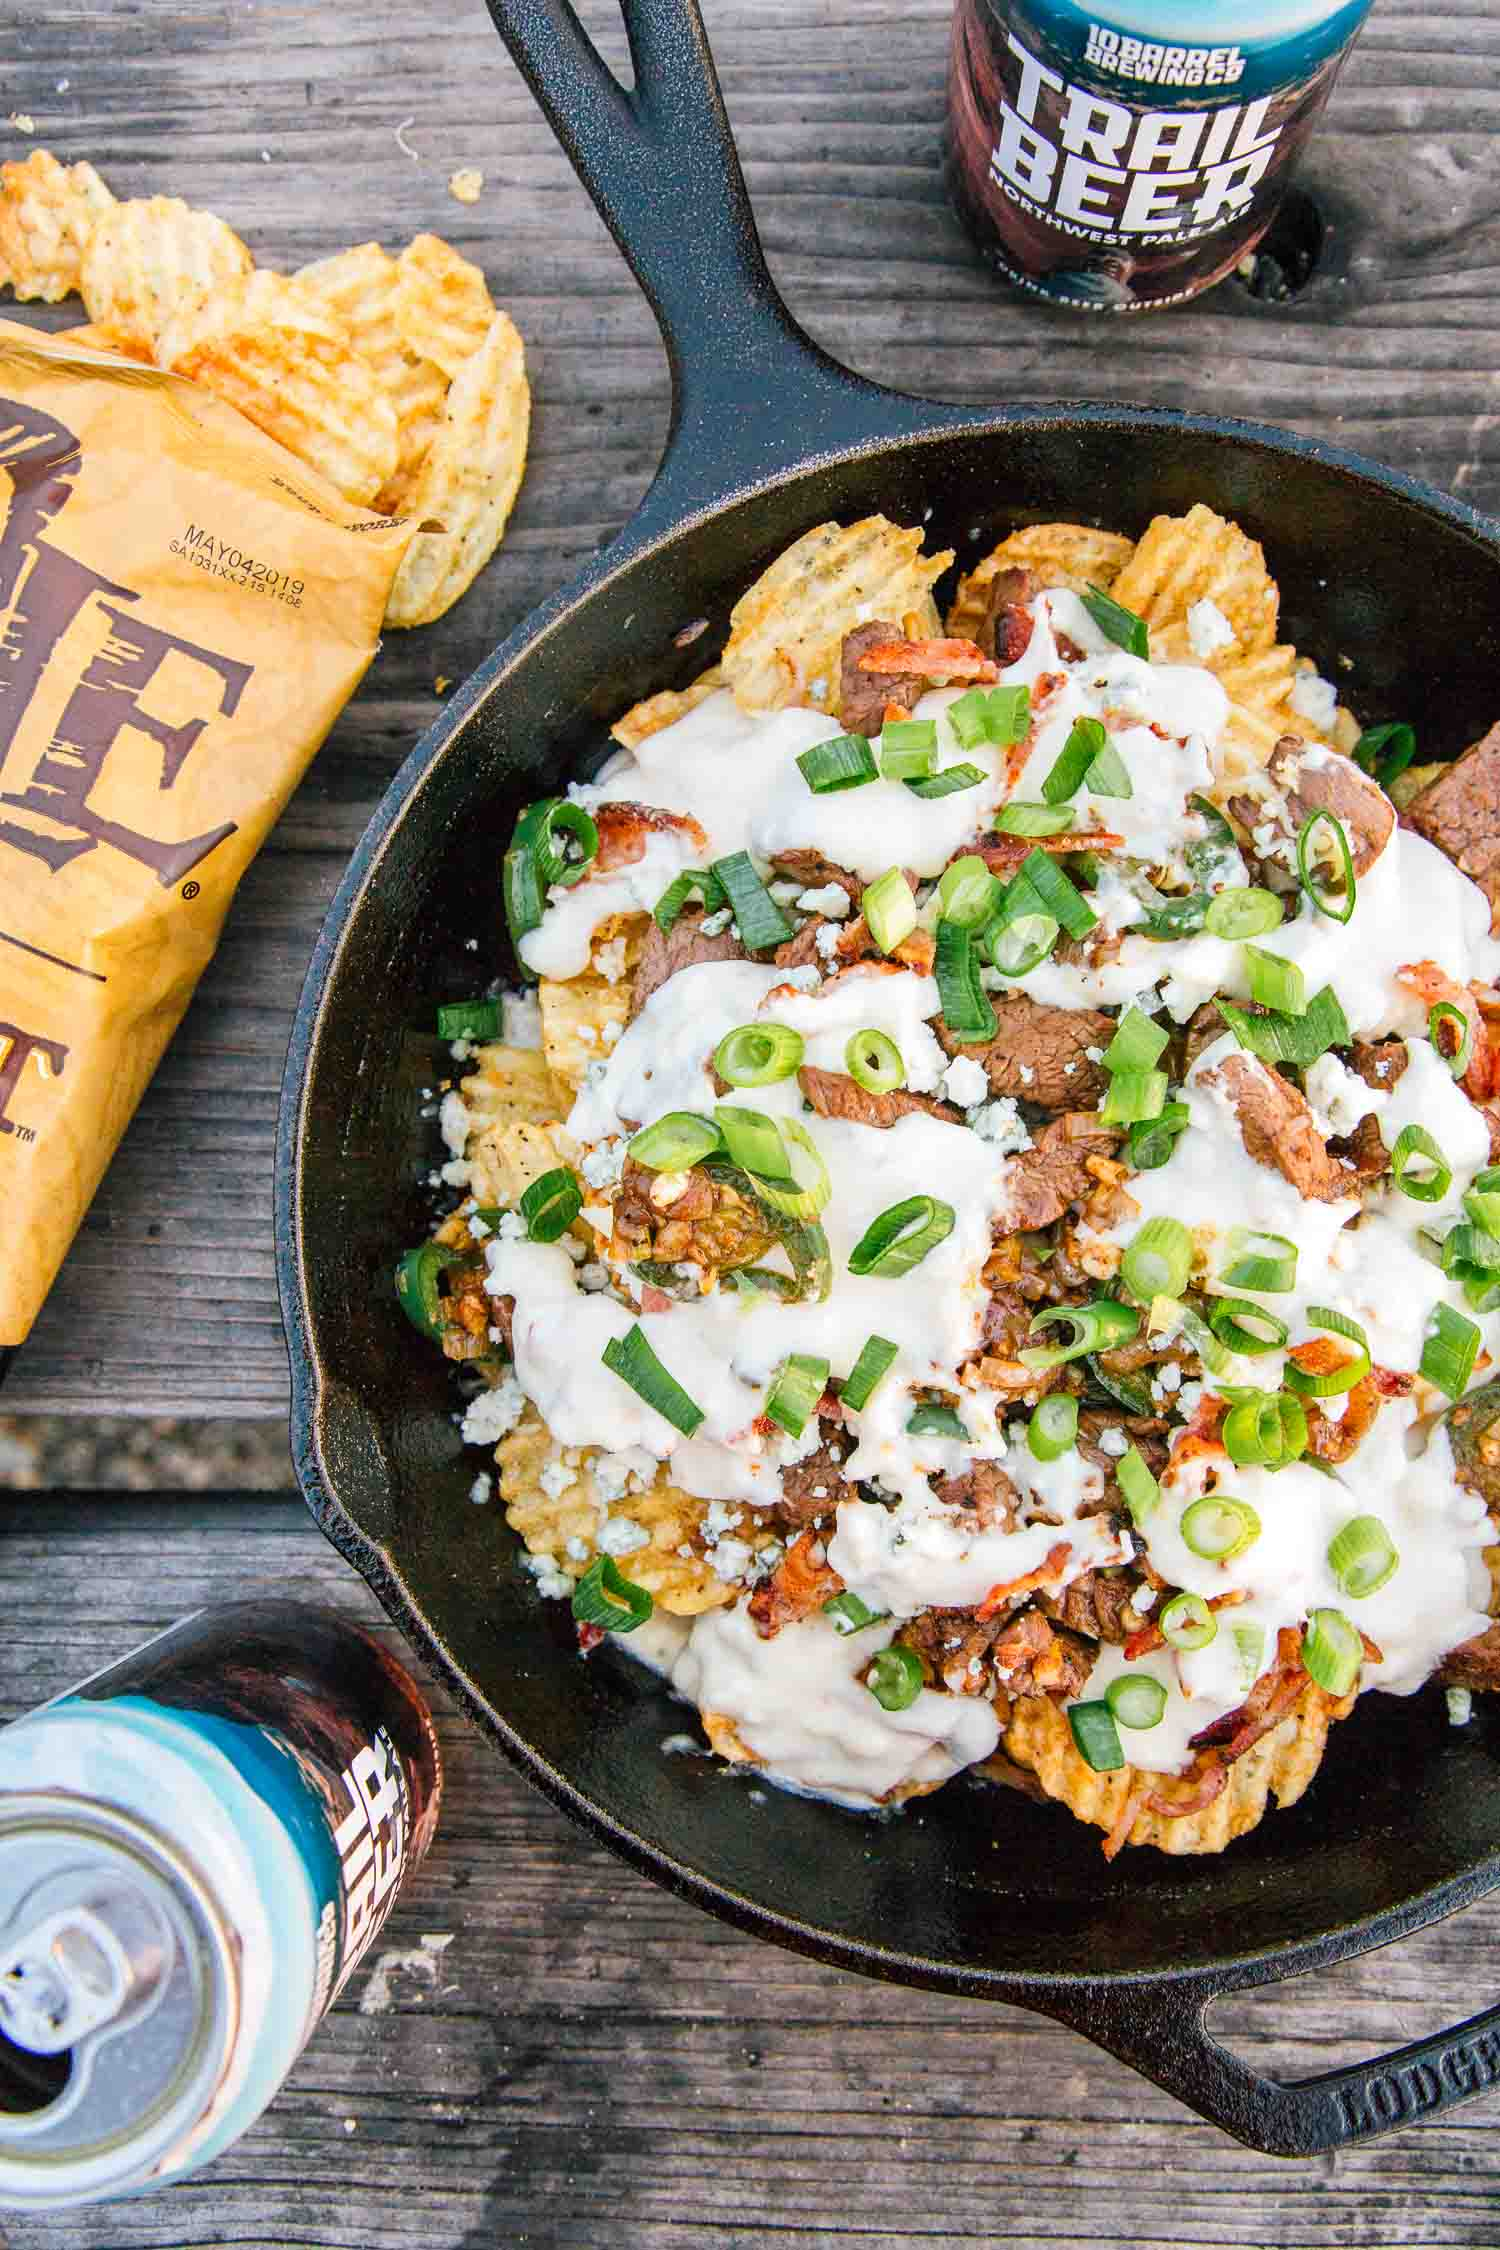 Overhead shot of cast iron skillet nachos. A bag of chips and a can of beer are in frame.